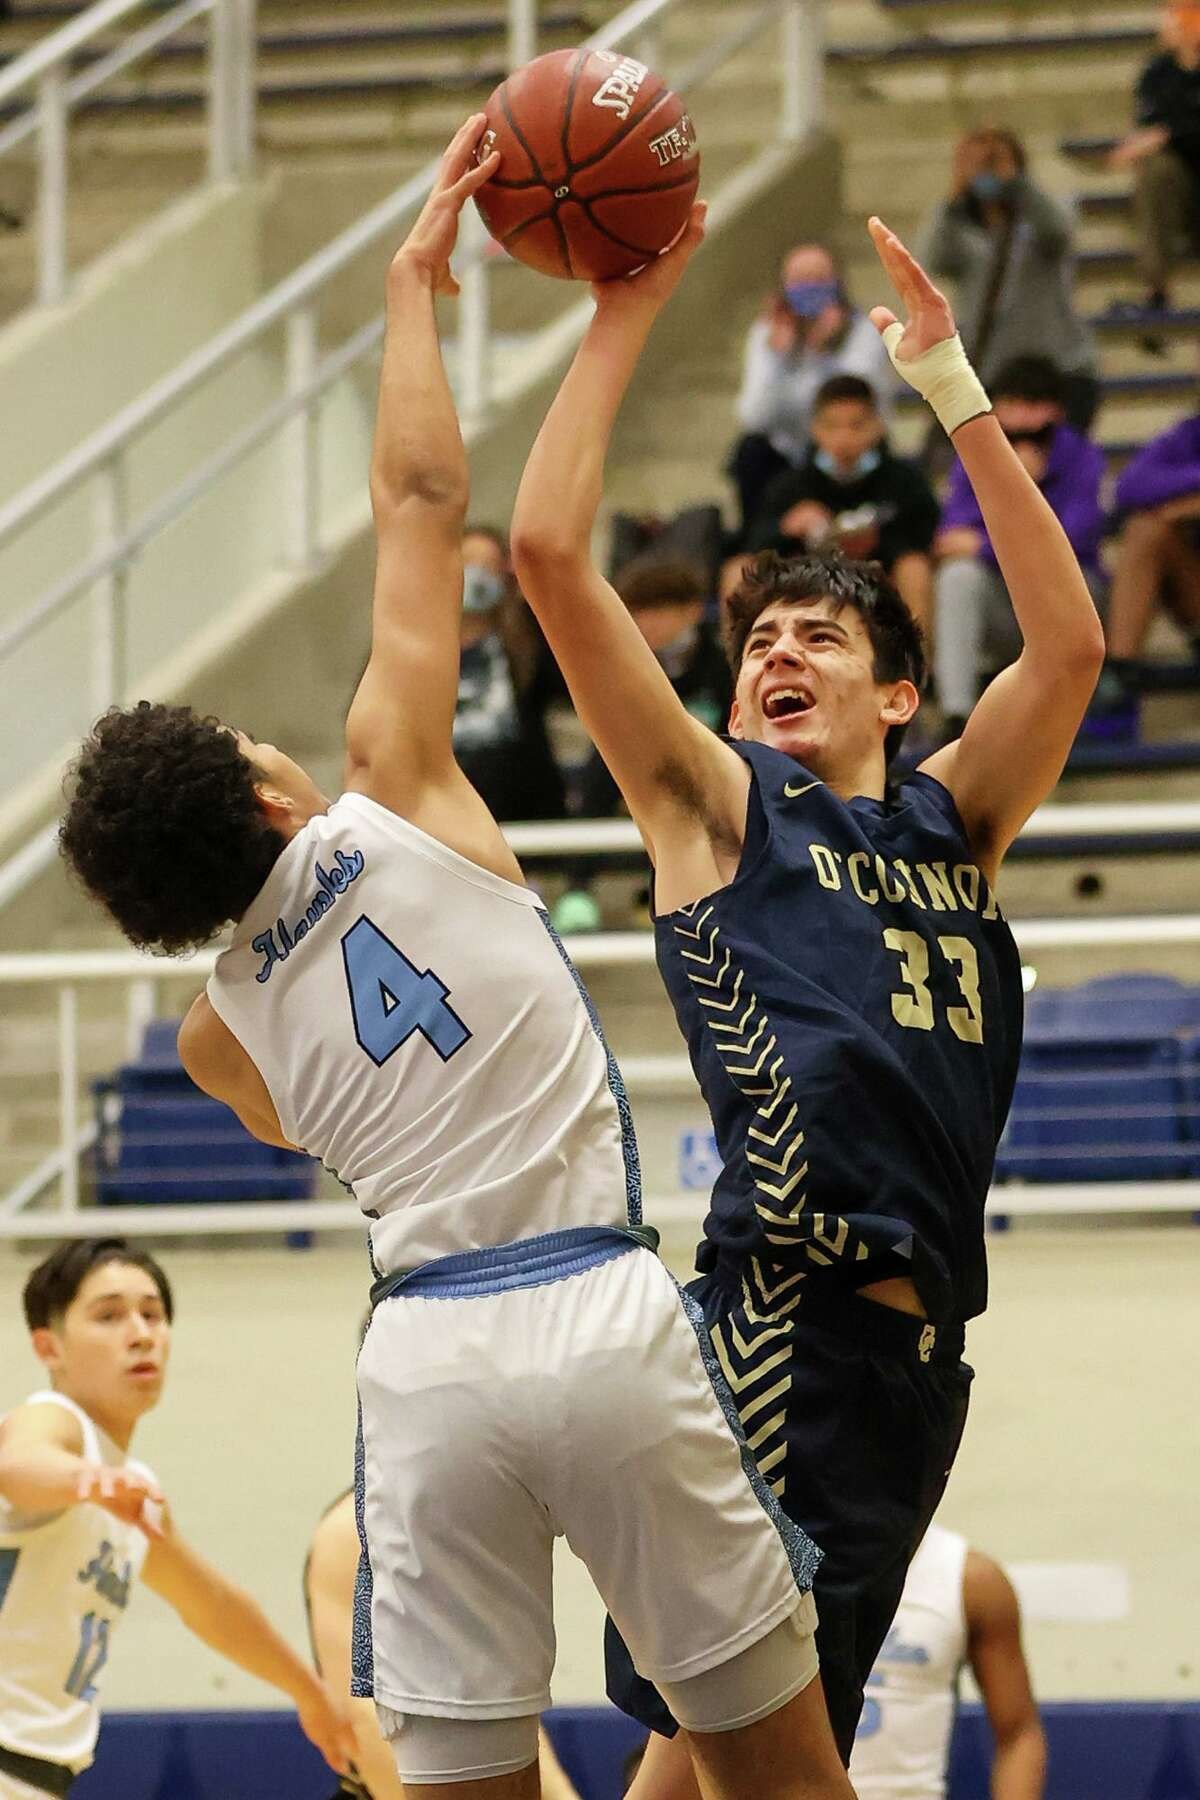 Harlan's Jarin Hall, left, blocks a shot by O'Connor's Josh Alcocer during their District 29-6A boys basketball game at Paul Taylor Field House on Saturday, Jan. 9, 2021. O'Connor beat Harlan 59-50.